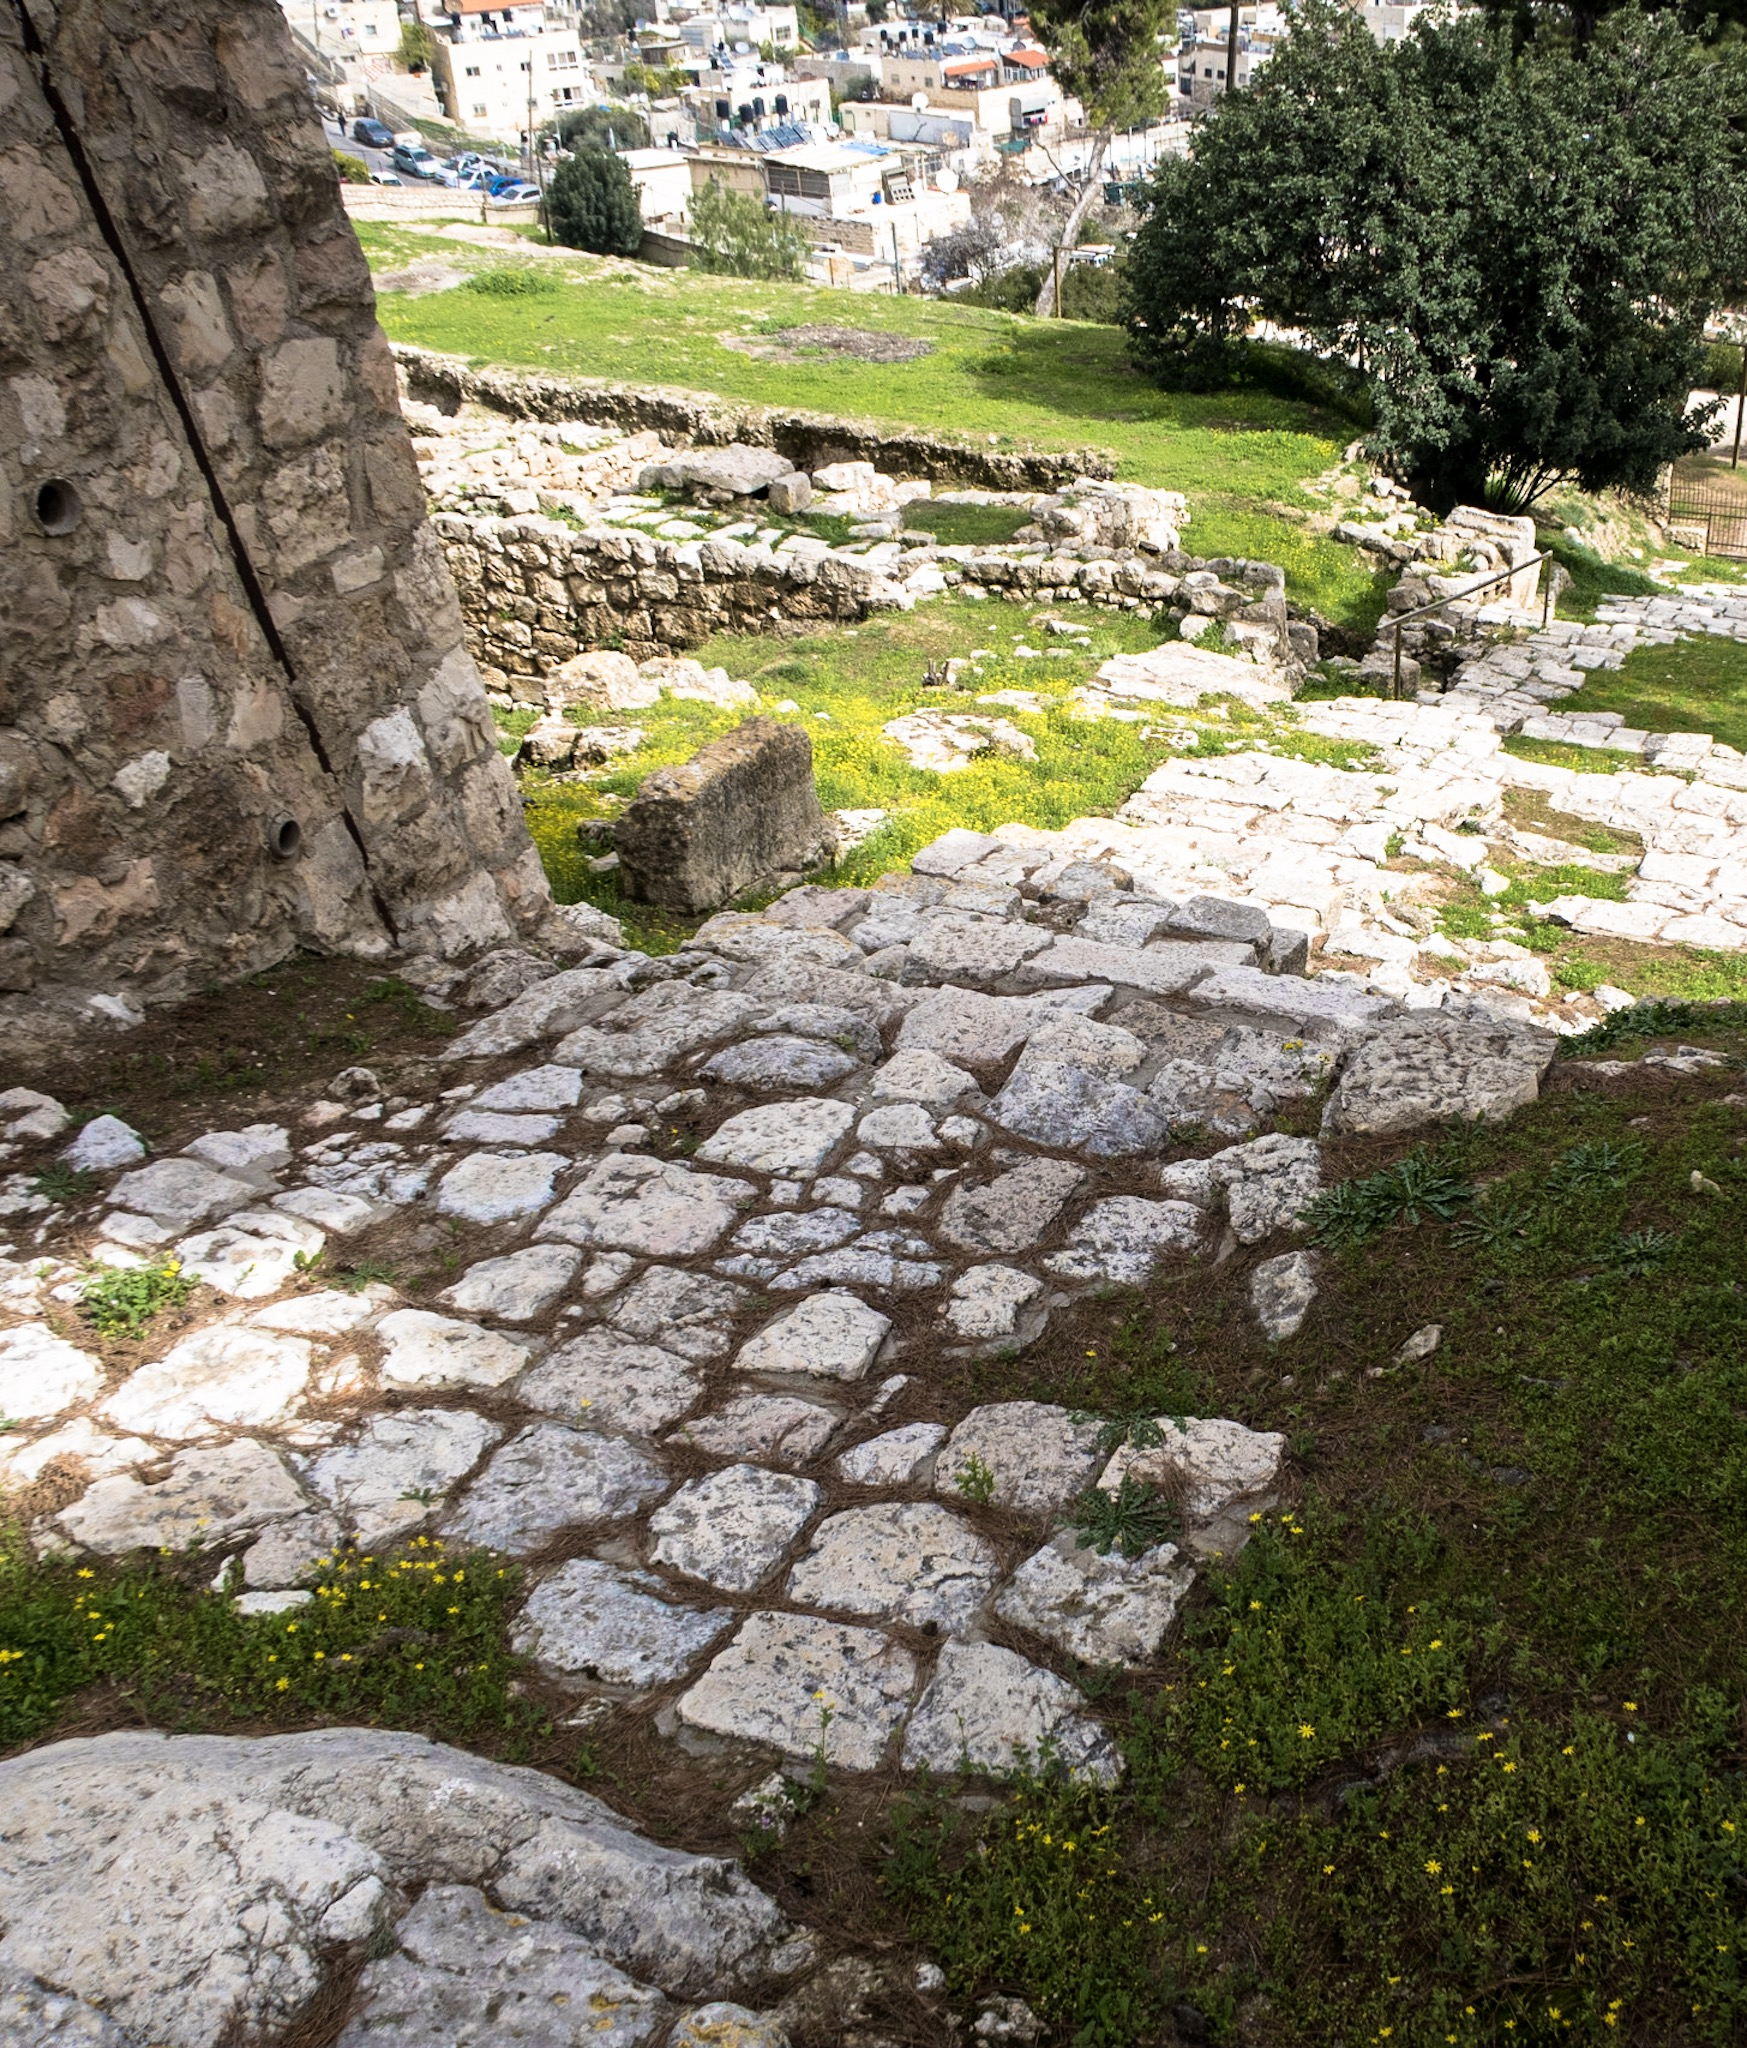 an ancient road outside the High Priest's house - a road Jesus likely walked